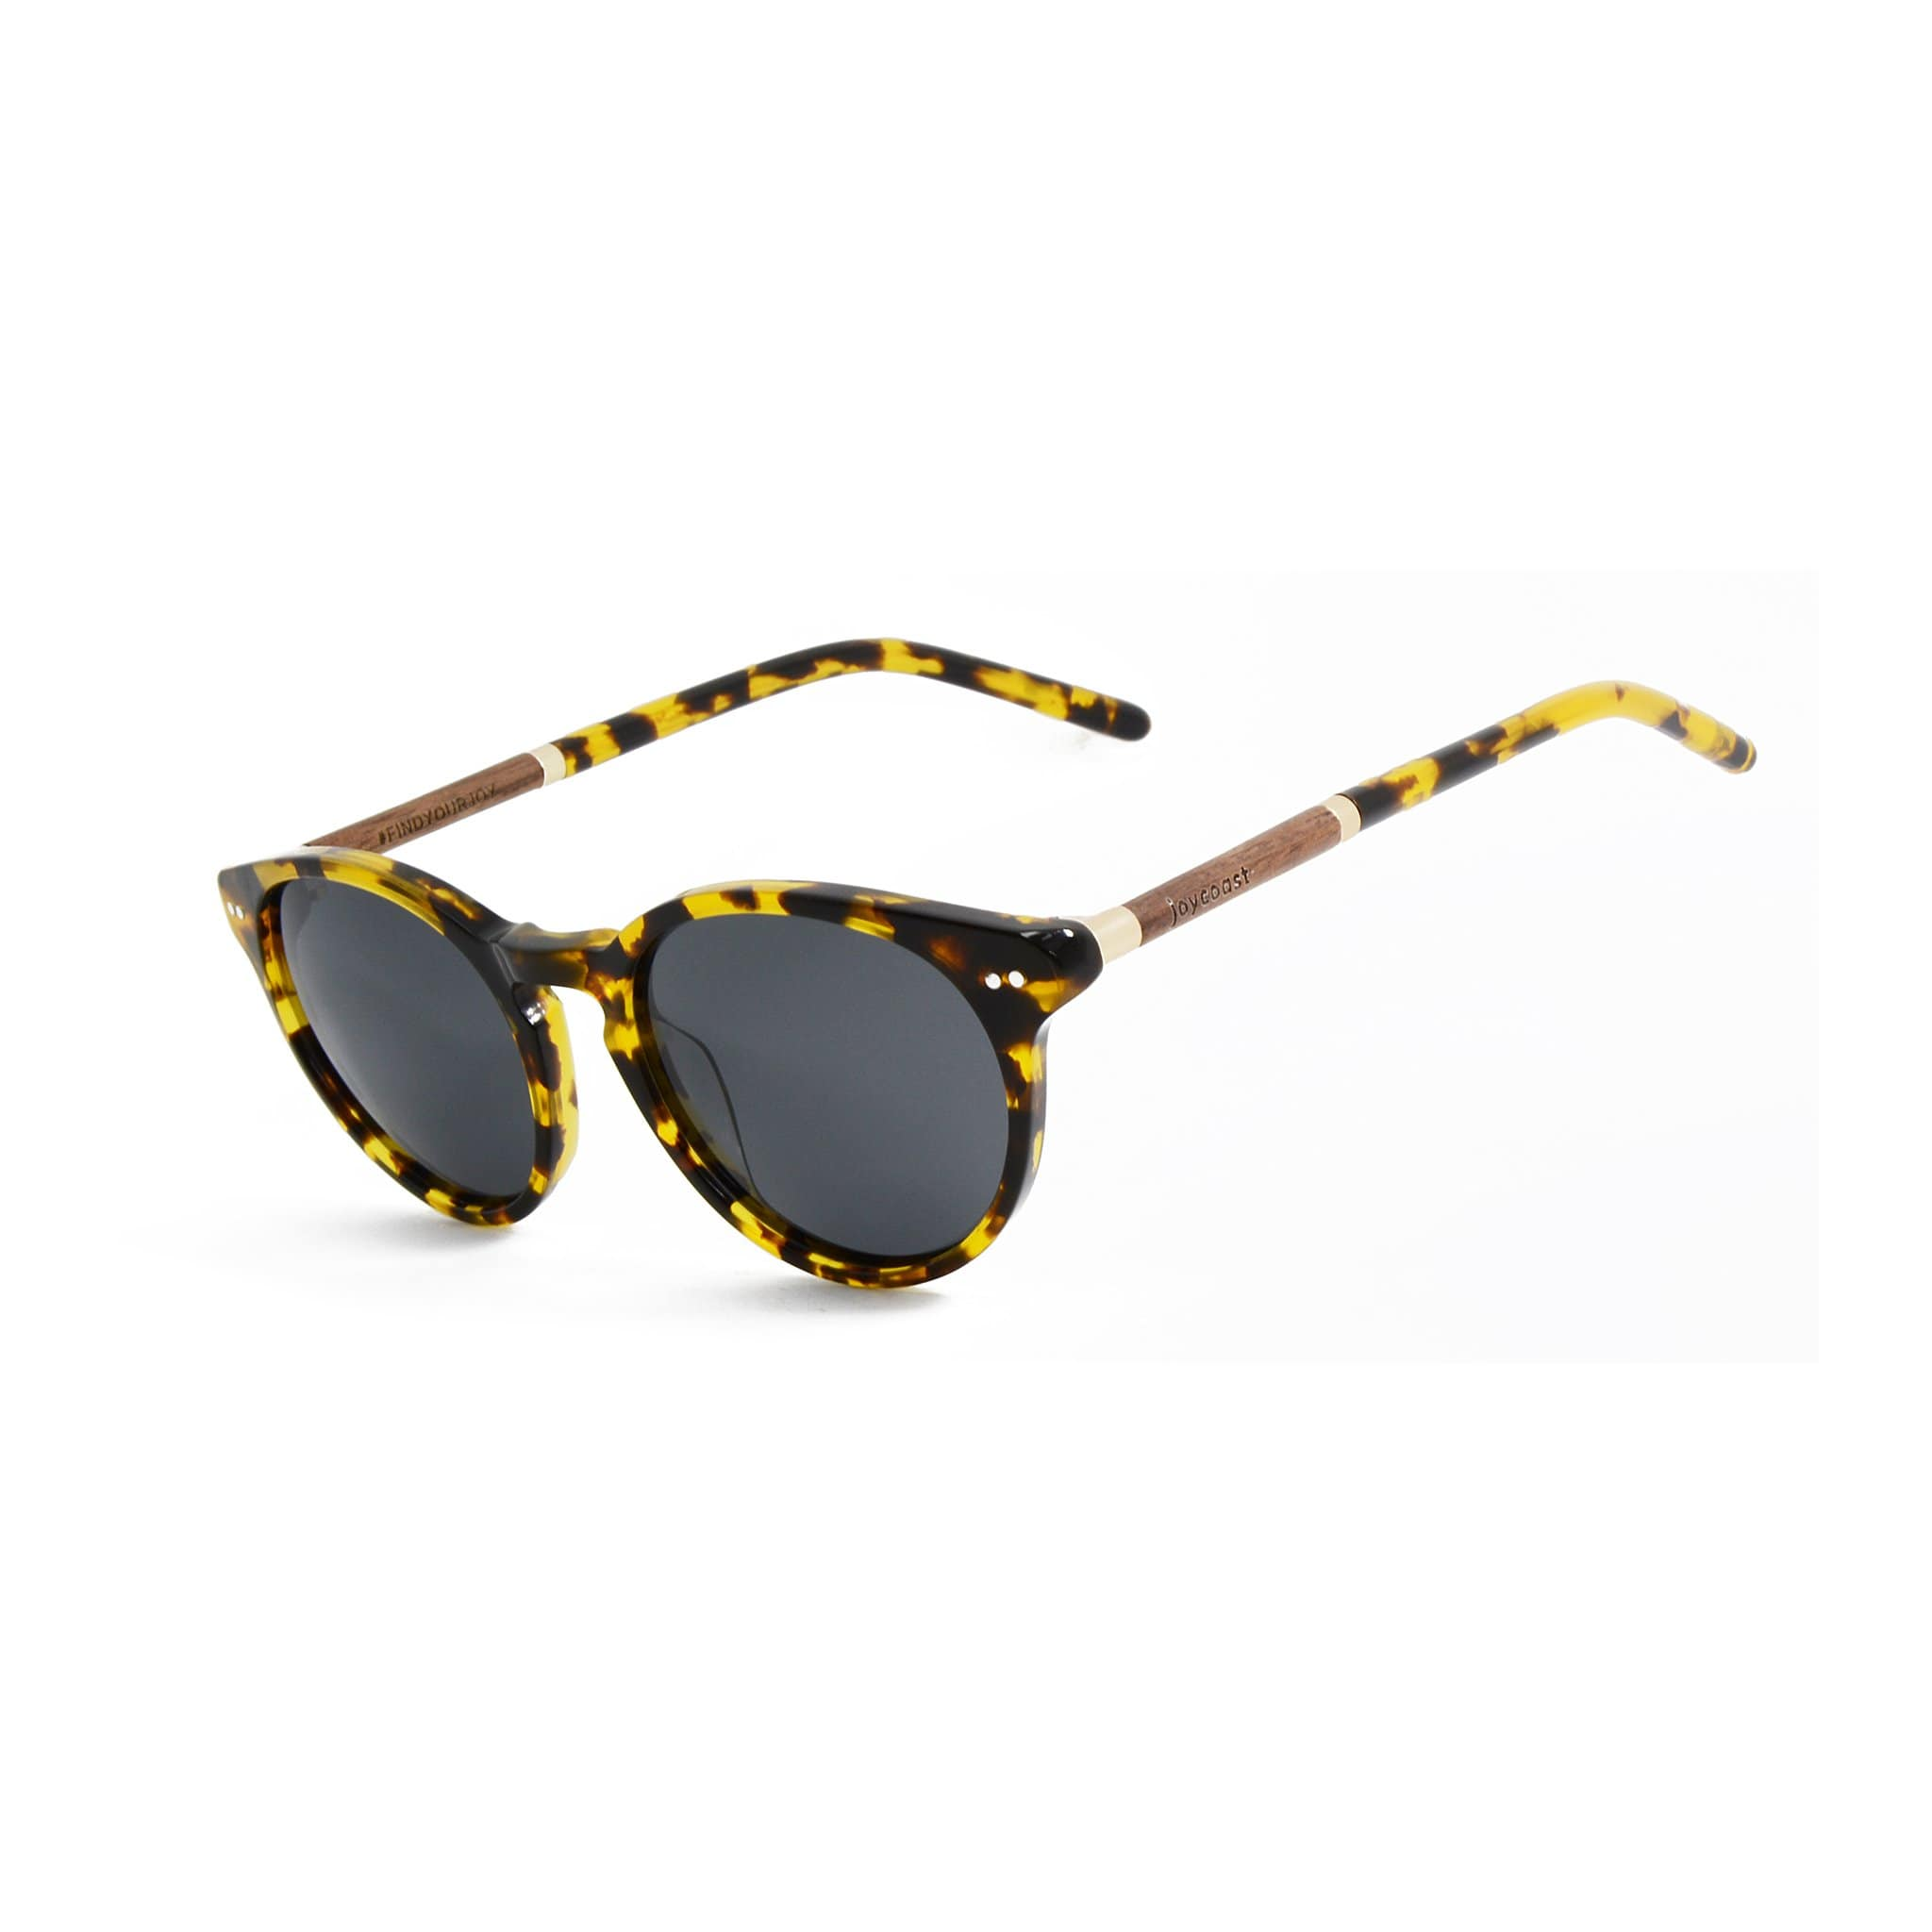 Walnut Misty Wooden Sunglasses - Wooden Watches and Sunglasses - Joycoast